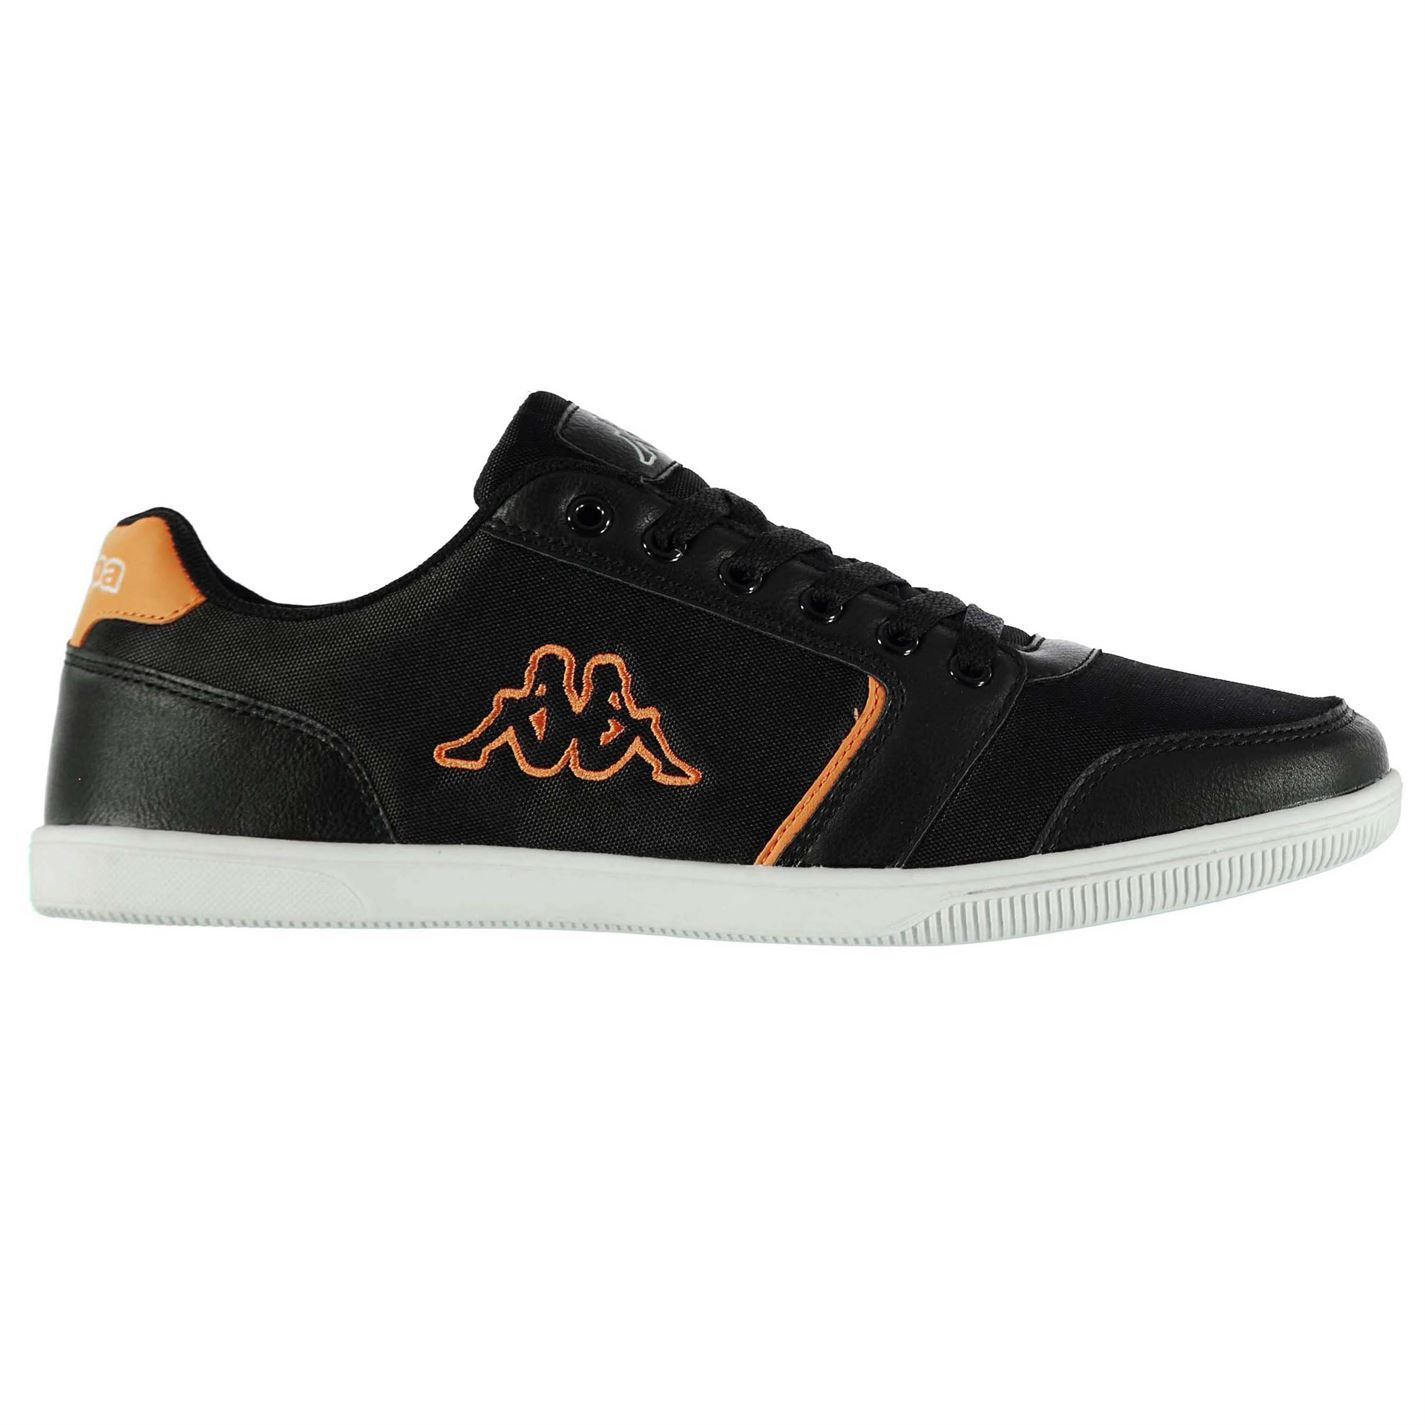 7a4bb8cd6dc Kappa-Farul-Trainers-Mens-Athleisure-Footwear-Shoes-Sneakers thumbnail